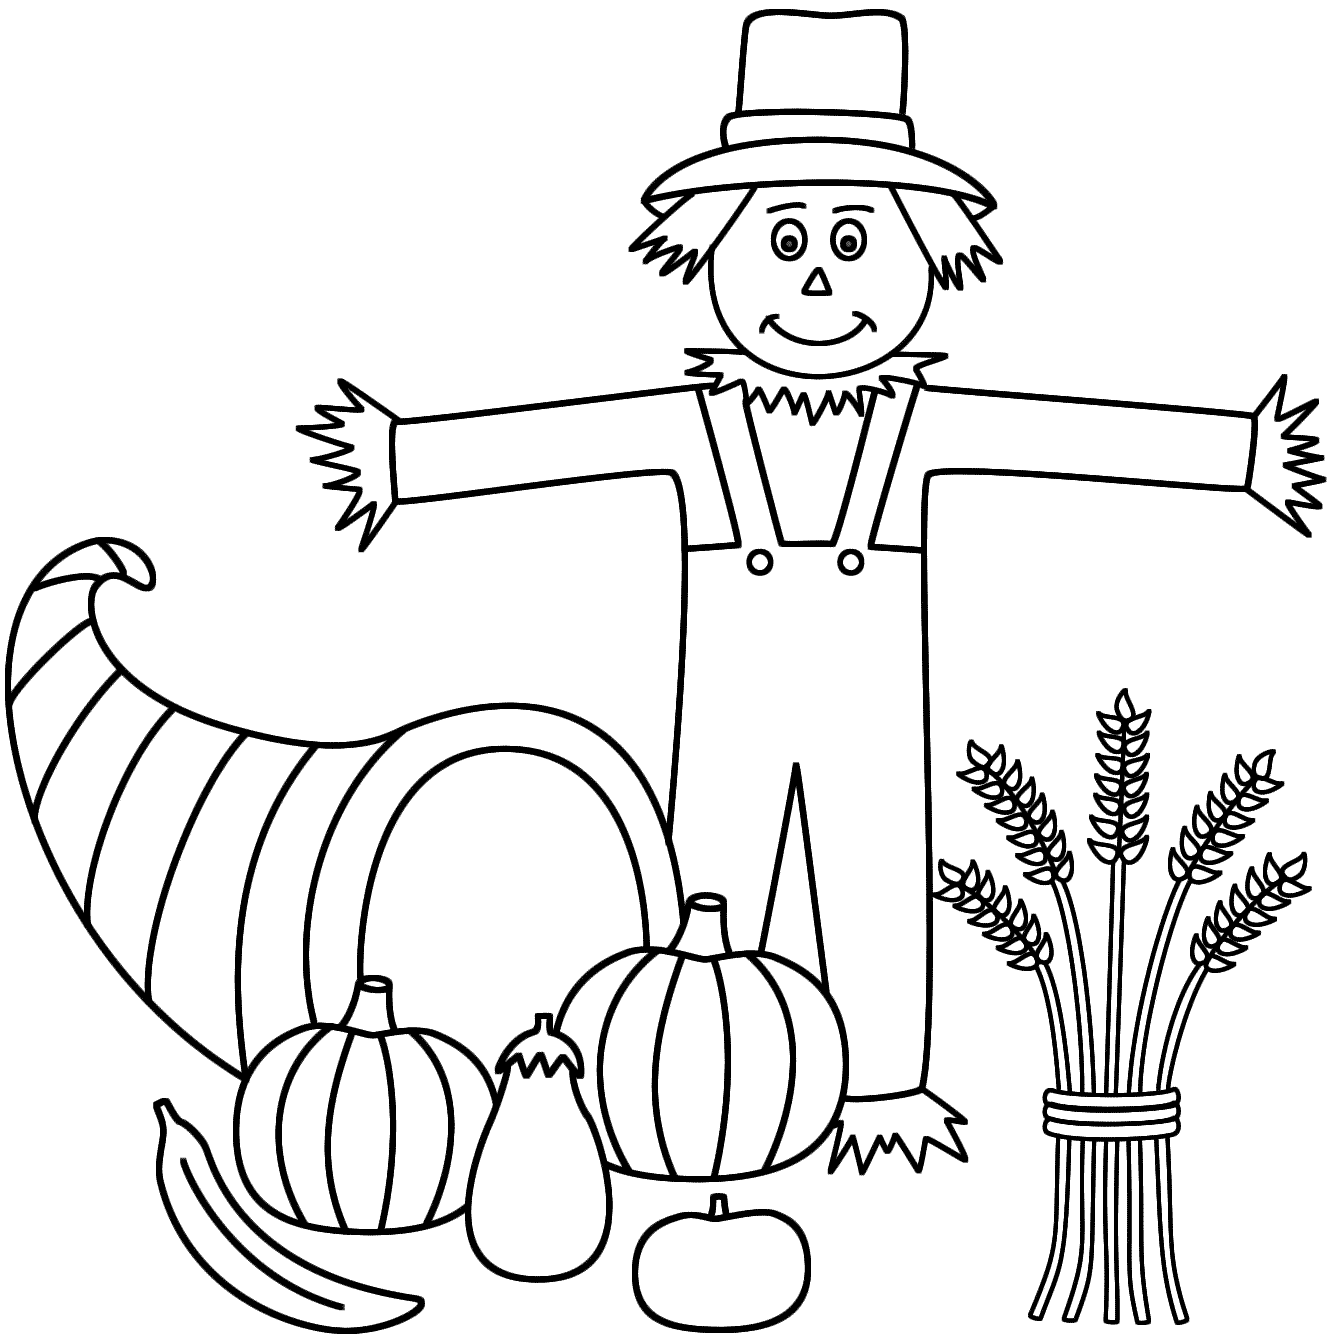 scarecrow coloring pages - Scarecrow Coloring Pages